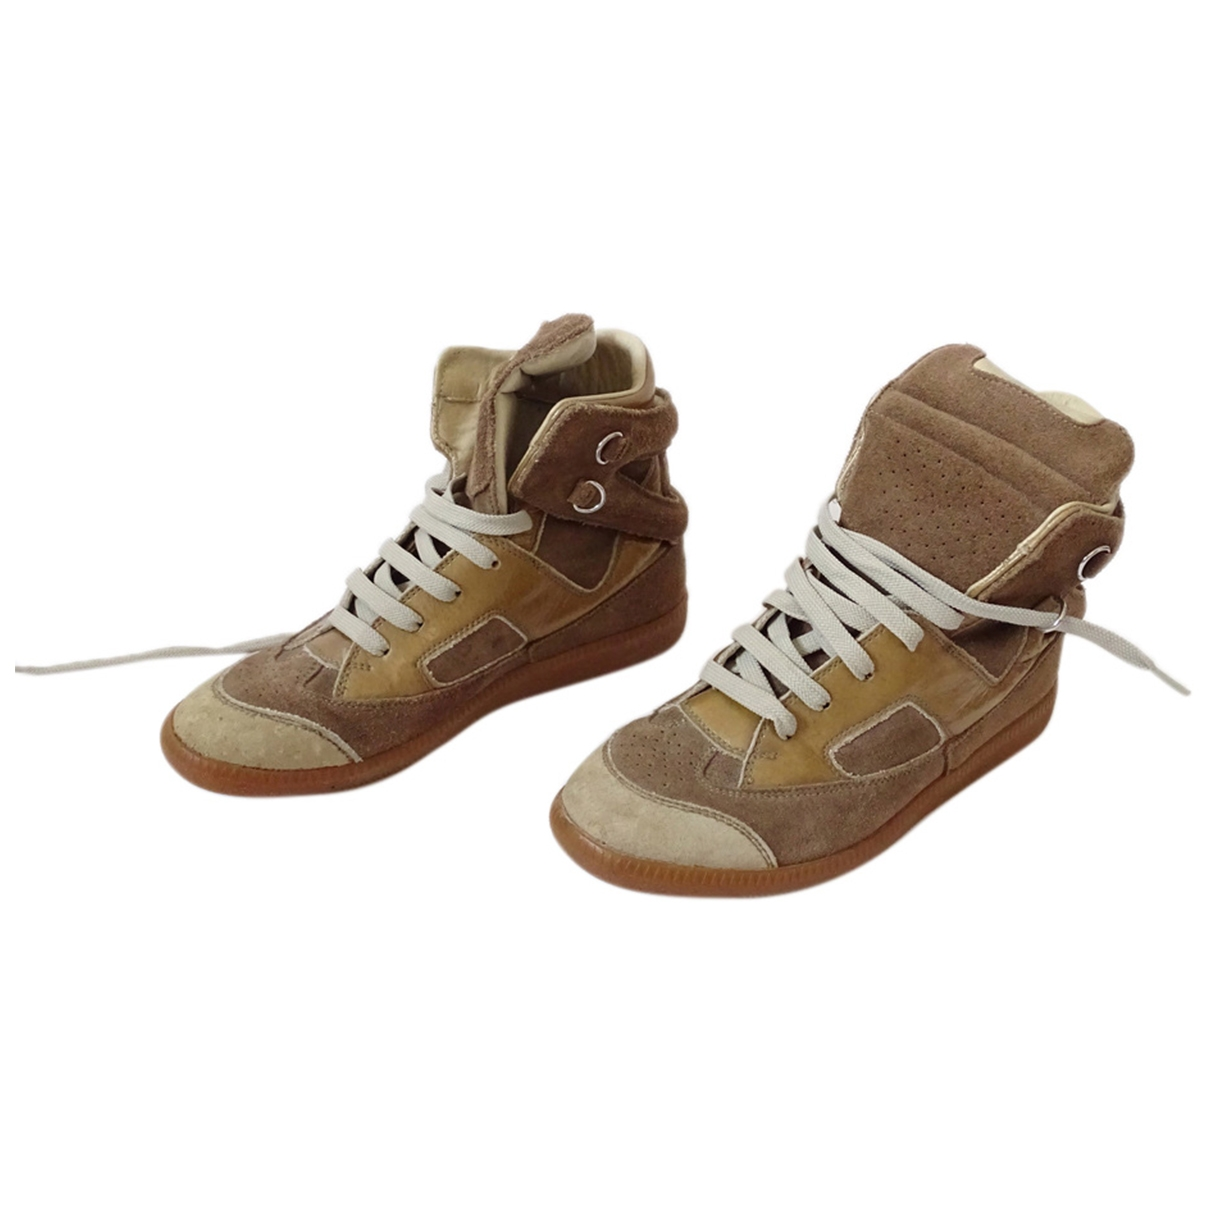 Maison Martin Margiela \N Camel Suede Trainers for Women 37 EU